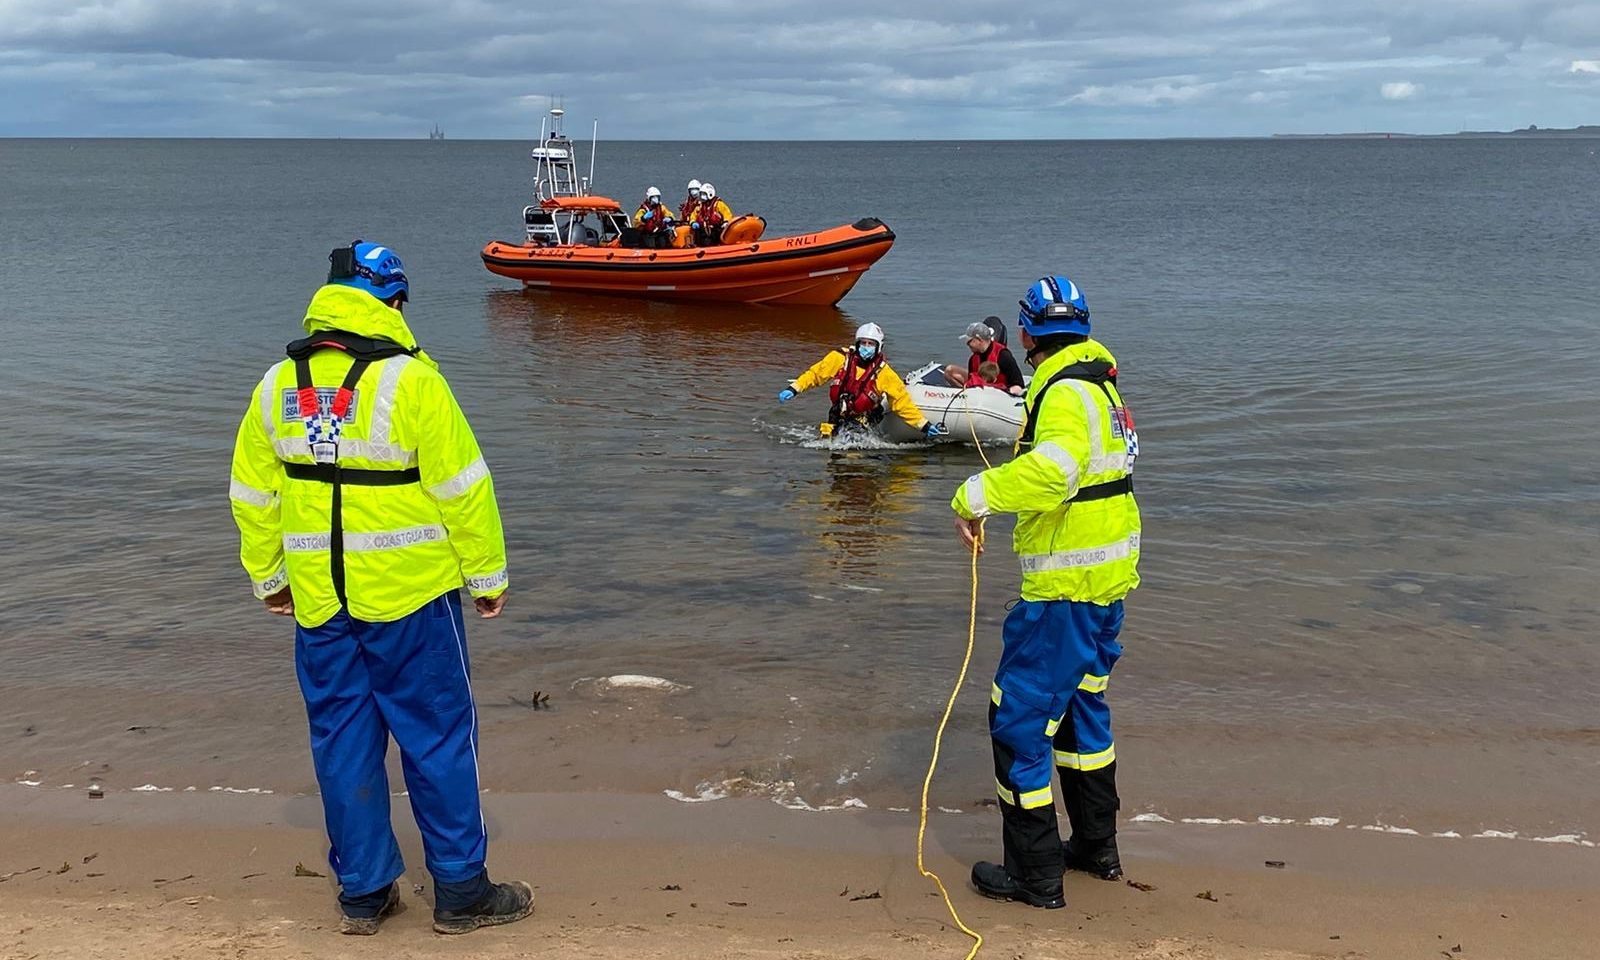 Kessock lifeboat launched to provide assistance off Rosemarkie Beach as the dinghy experienced engine failure